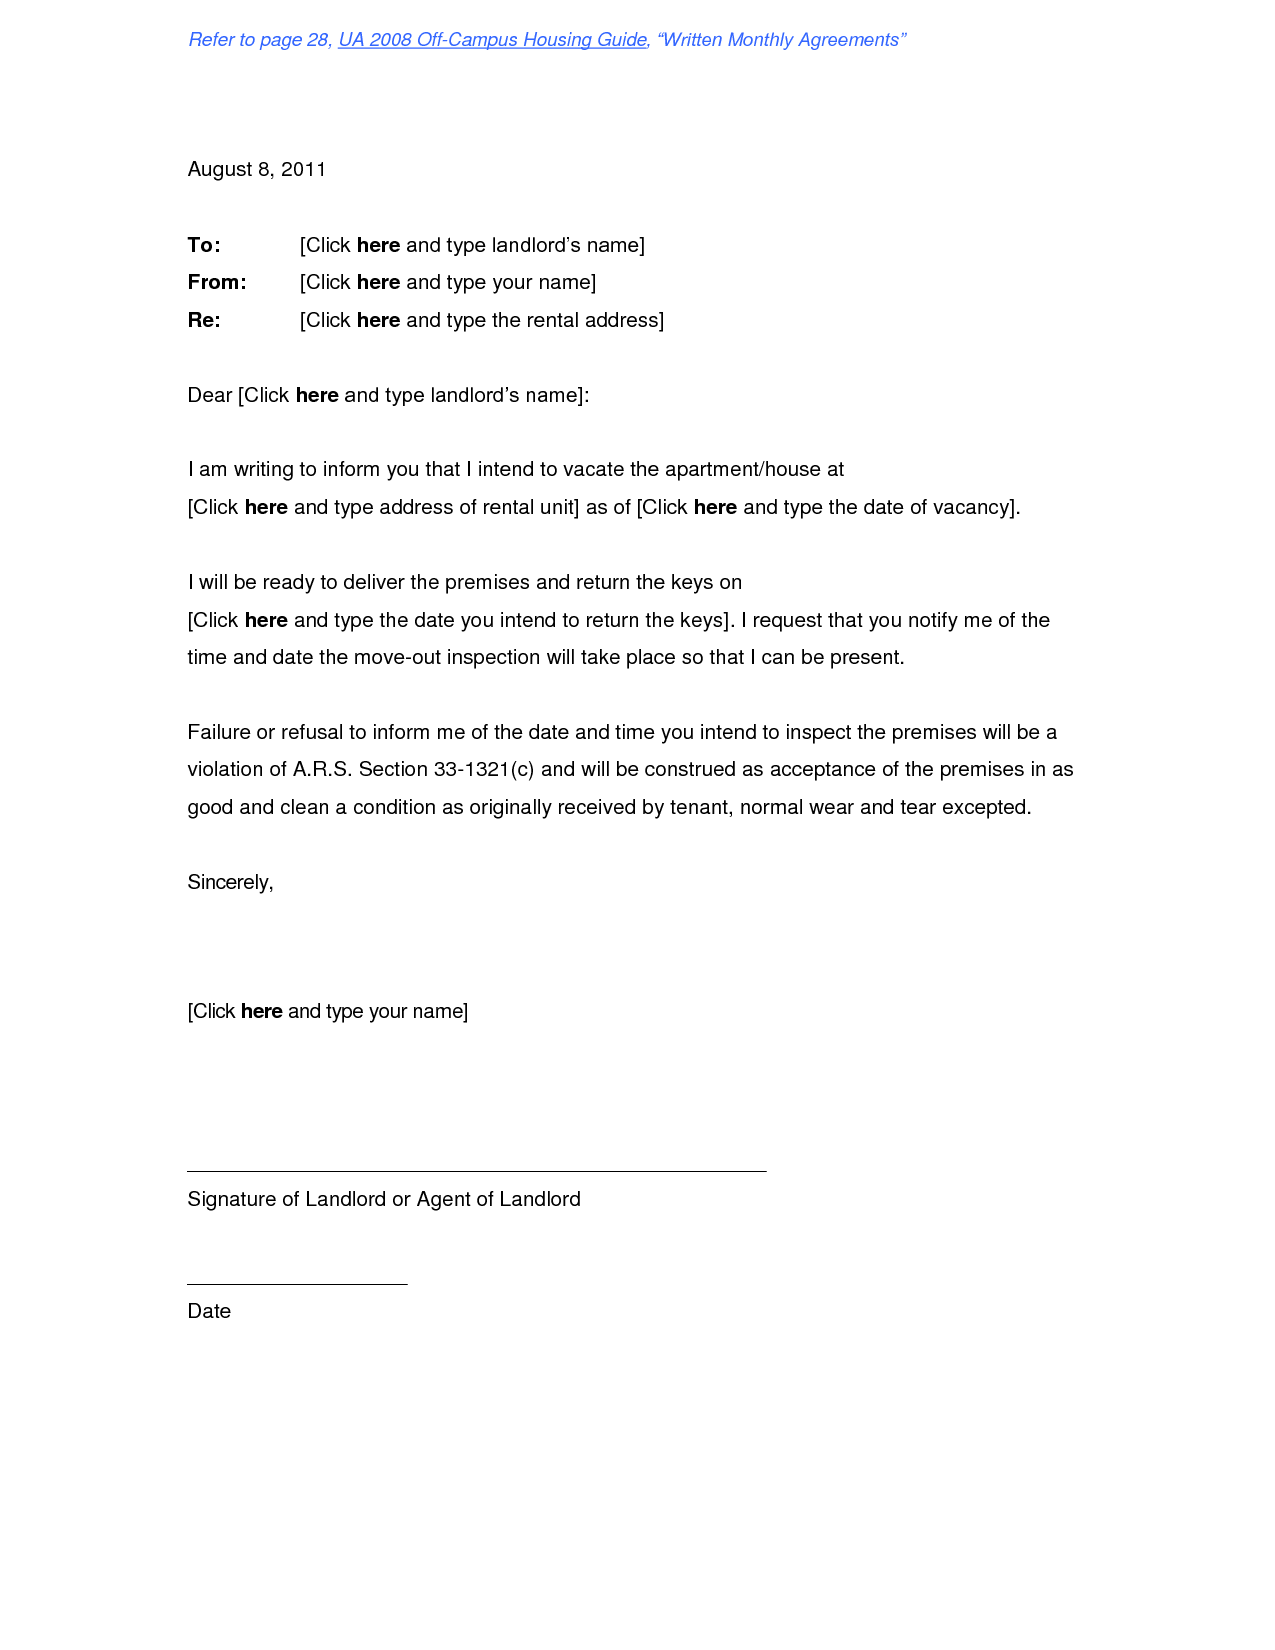 end of lease letter to landlord